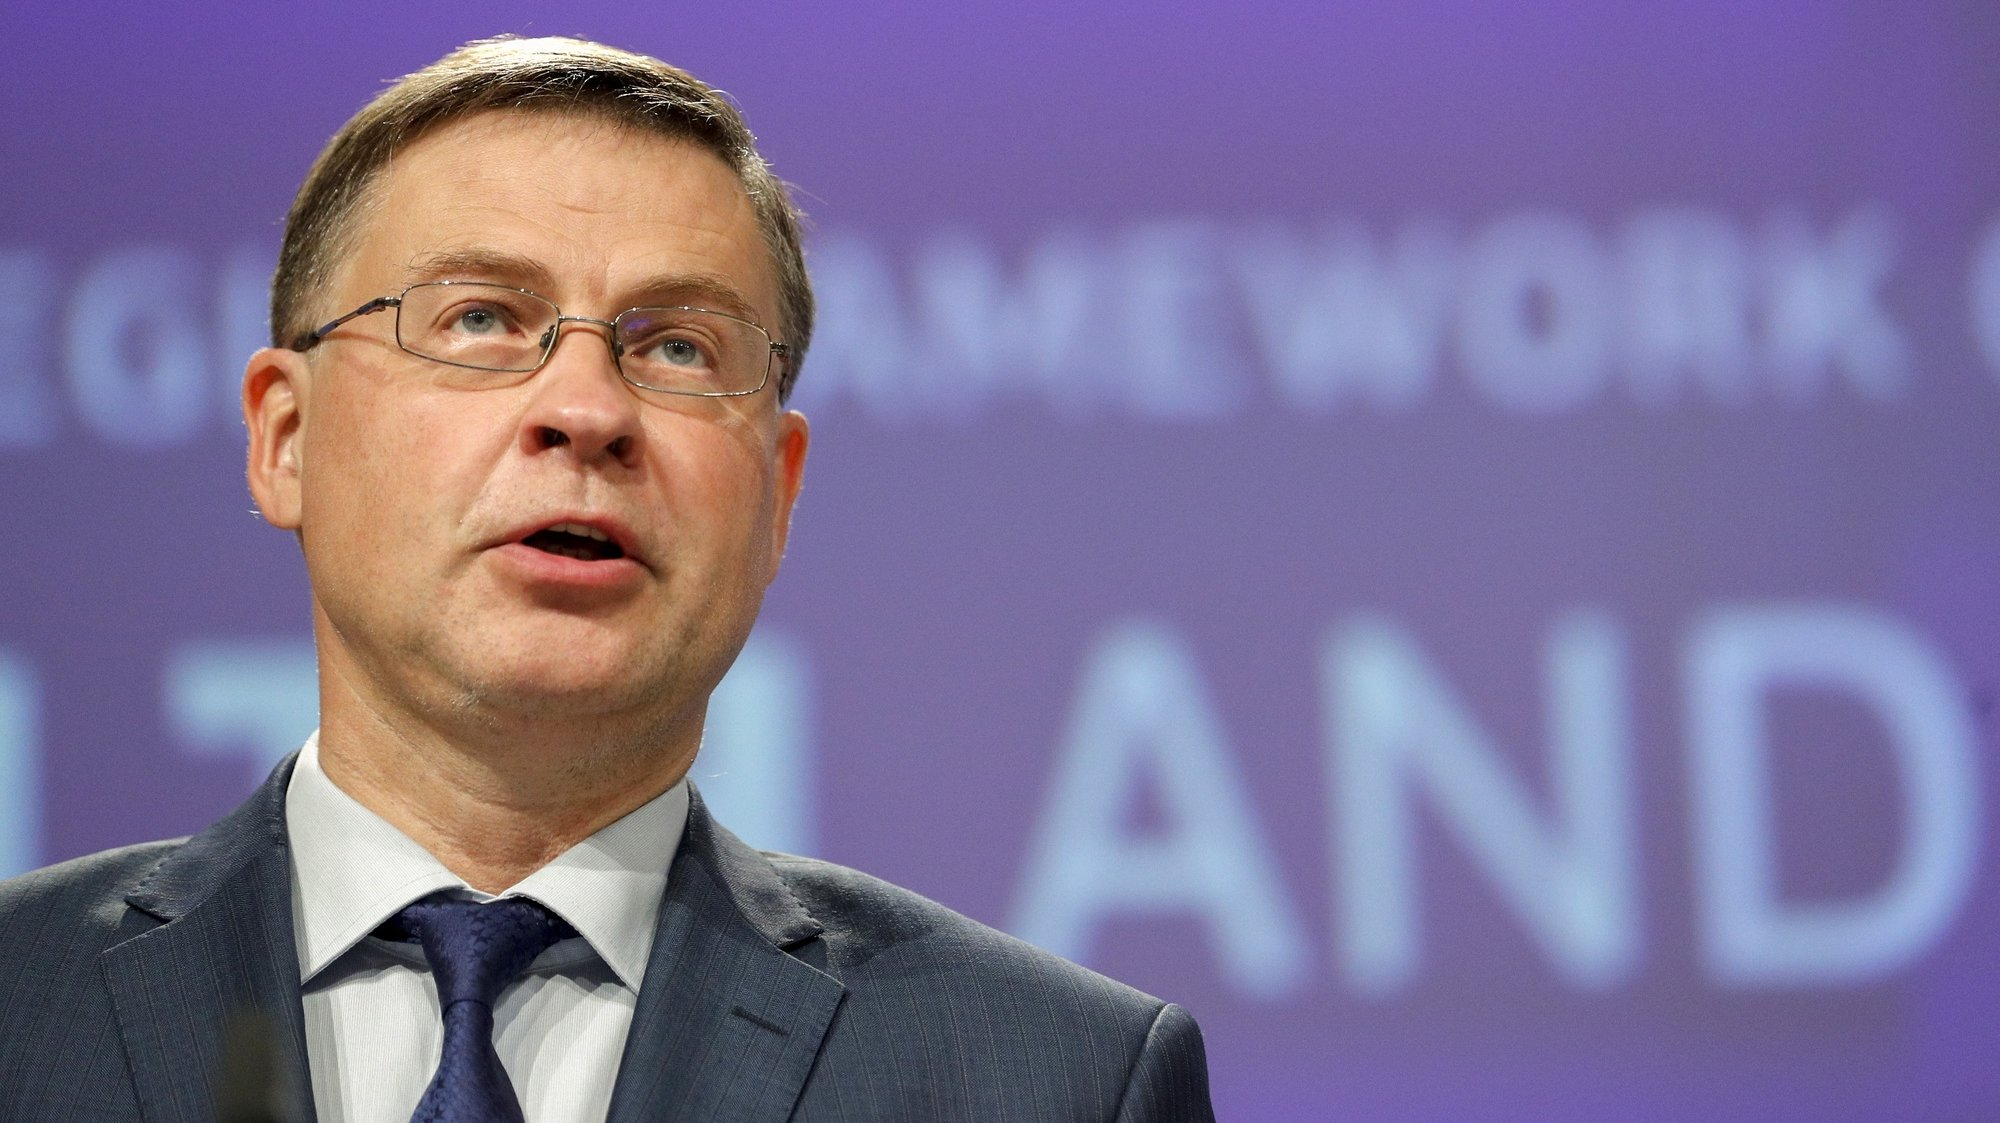 epa09307656 European Commission vice-president Valdis Dombrovskis gives a news conference with Commissioner Nicolas Schmit on communication on a new occupational safety and health strategy framework in Brussels, Belgium, 28 June 2021.  EPA/JOHANNA GERON / POOL